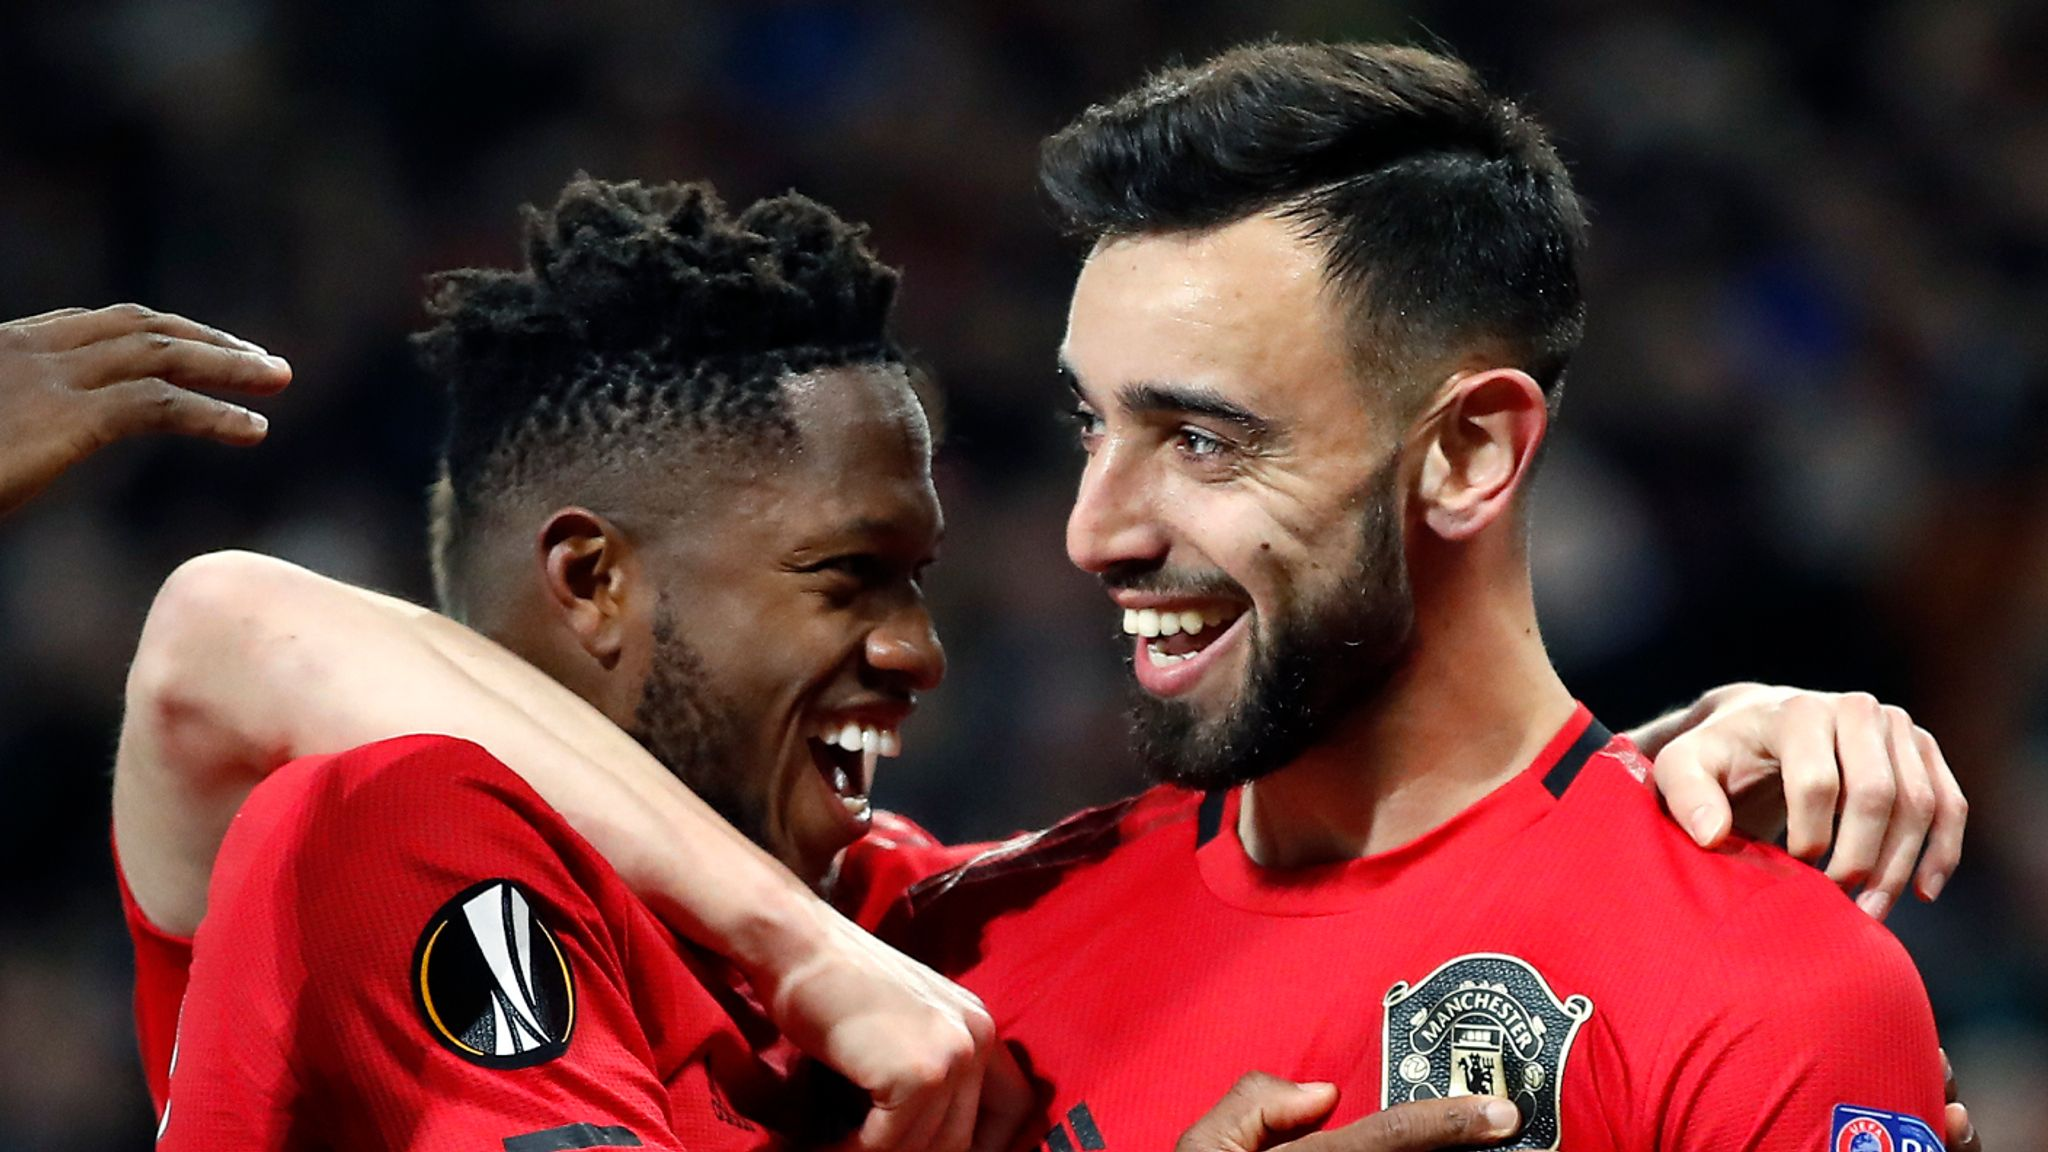 Manchester United 5-0 Club Brugge (6-1 aggregate): Bruno Fernandes shines as United cruise into last 16